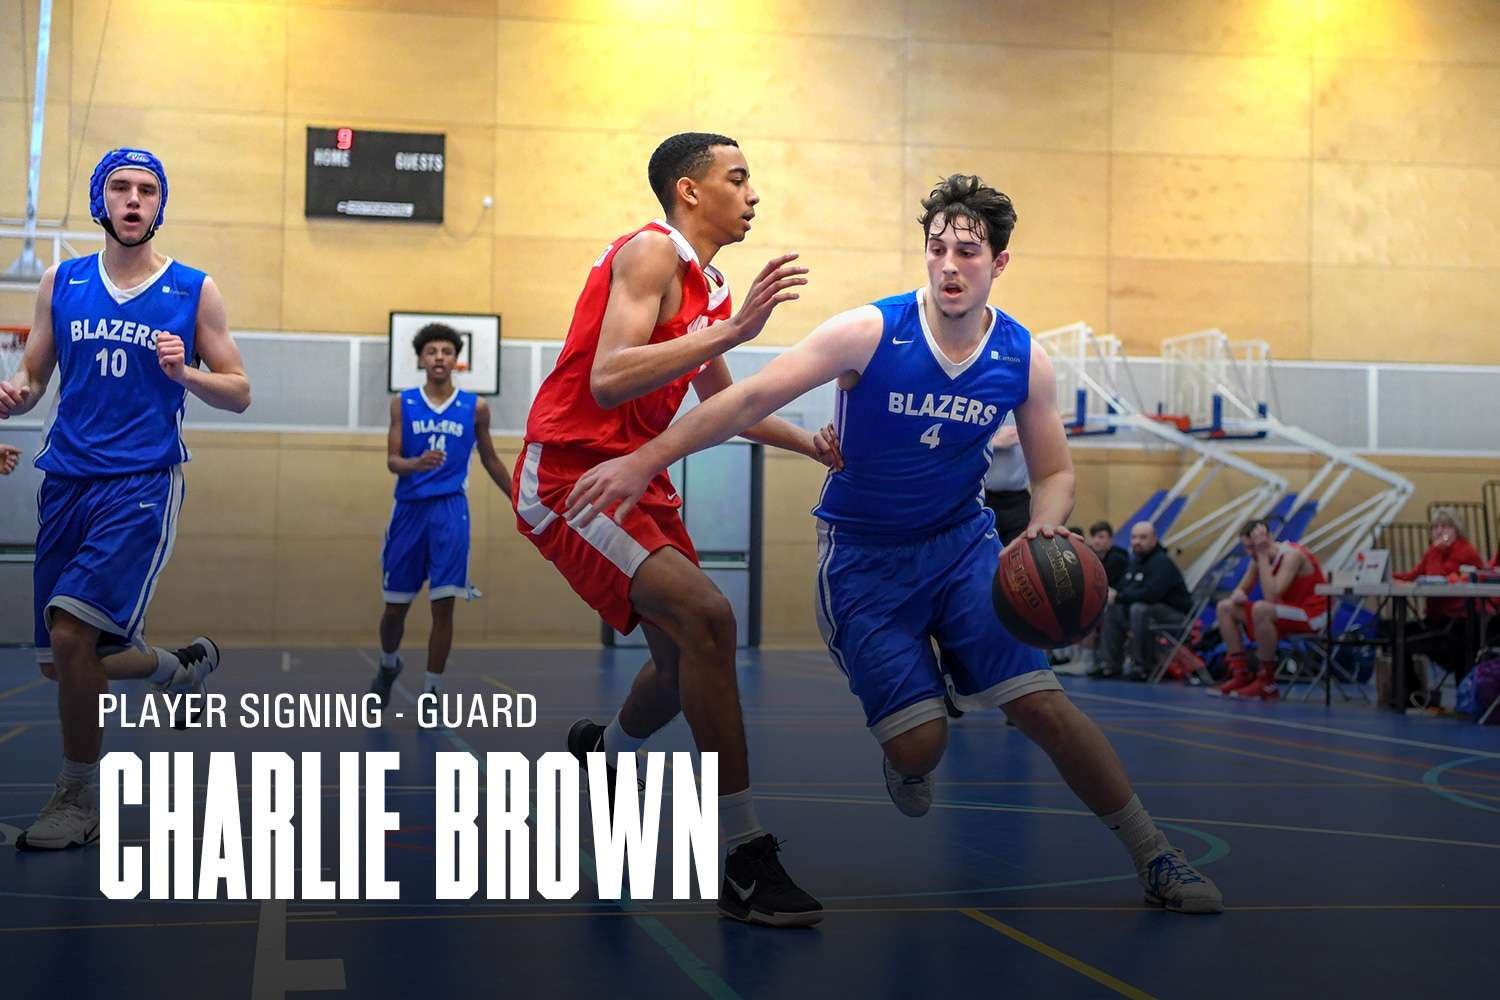 Charlie Brown signs for Derby Trailblazers Mens Senior Team